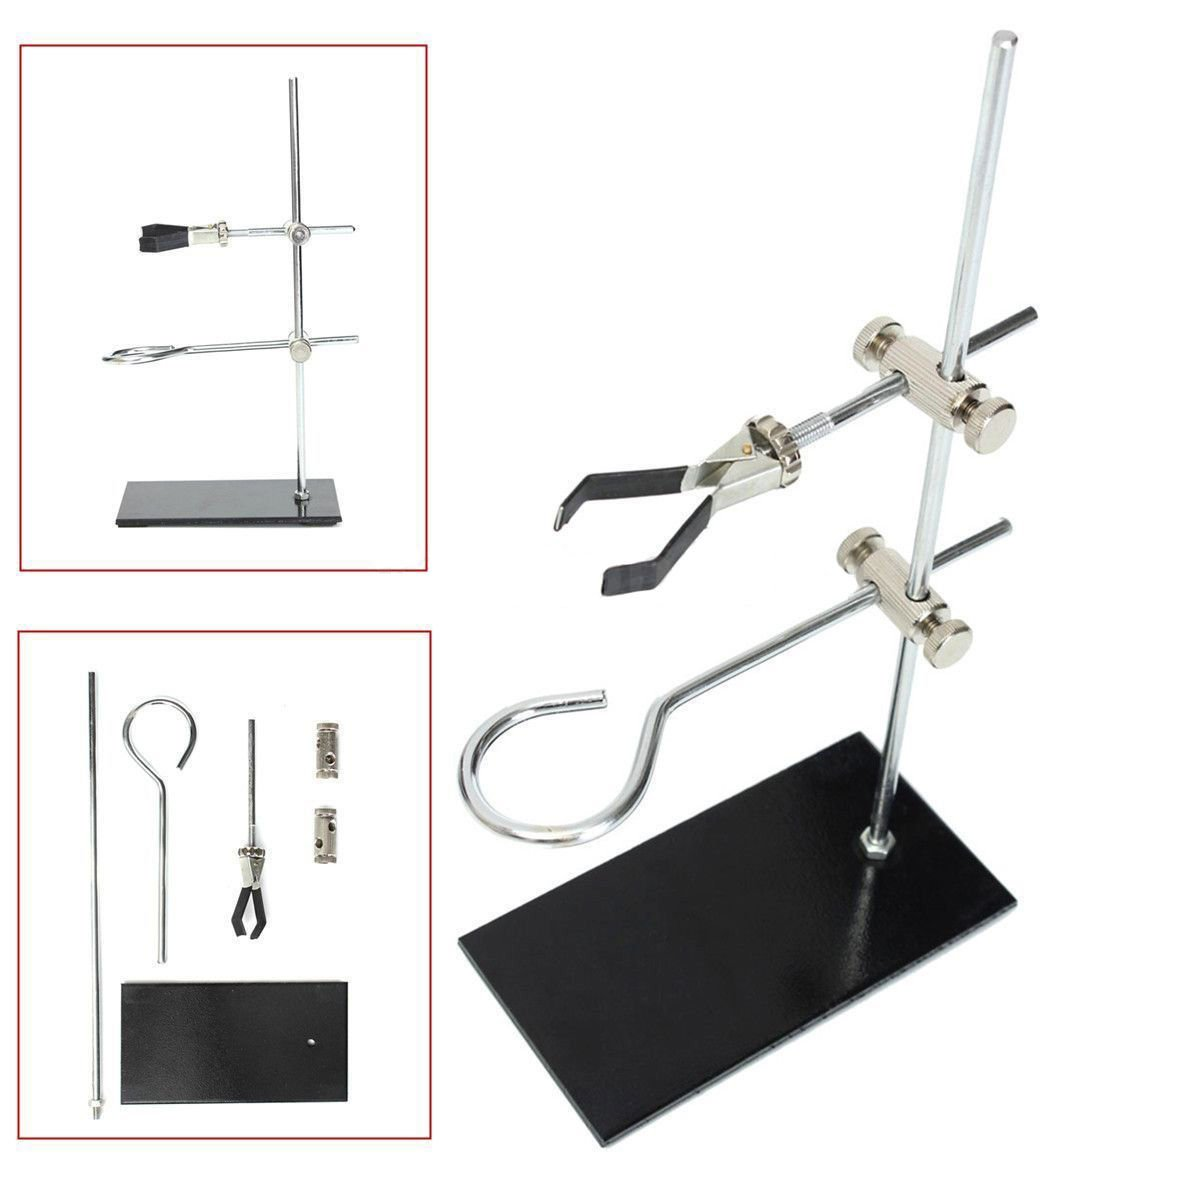 lieomo Mini High Retort Stands Metal Support Clamp Flask Laboratory Stand Set 30CM